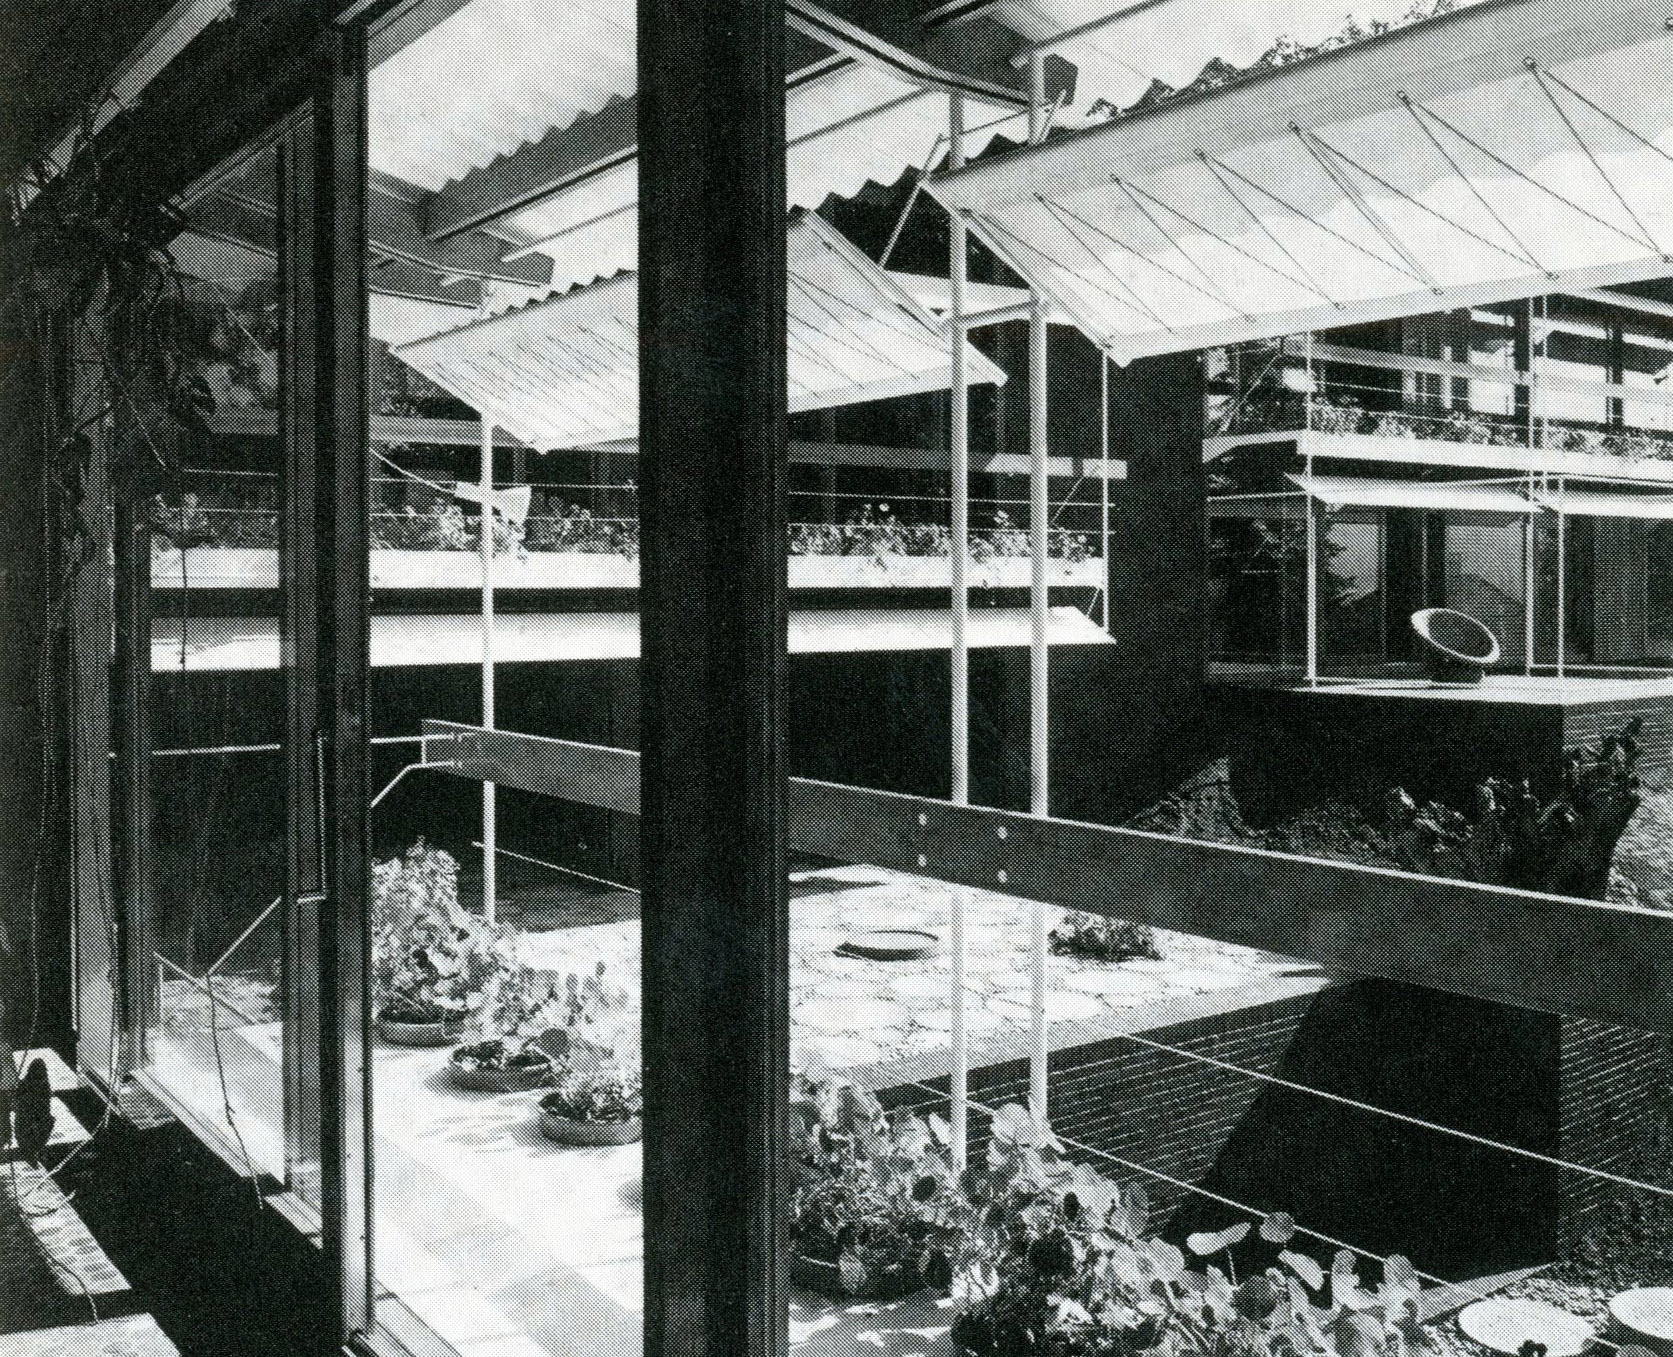 Pivoting Awnings In A House By Egon Eiermann 298 Filt3rs